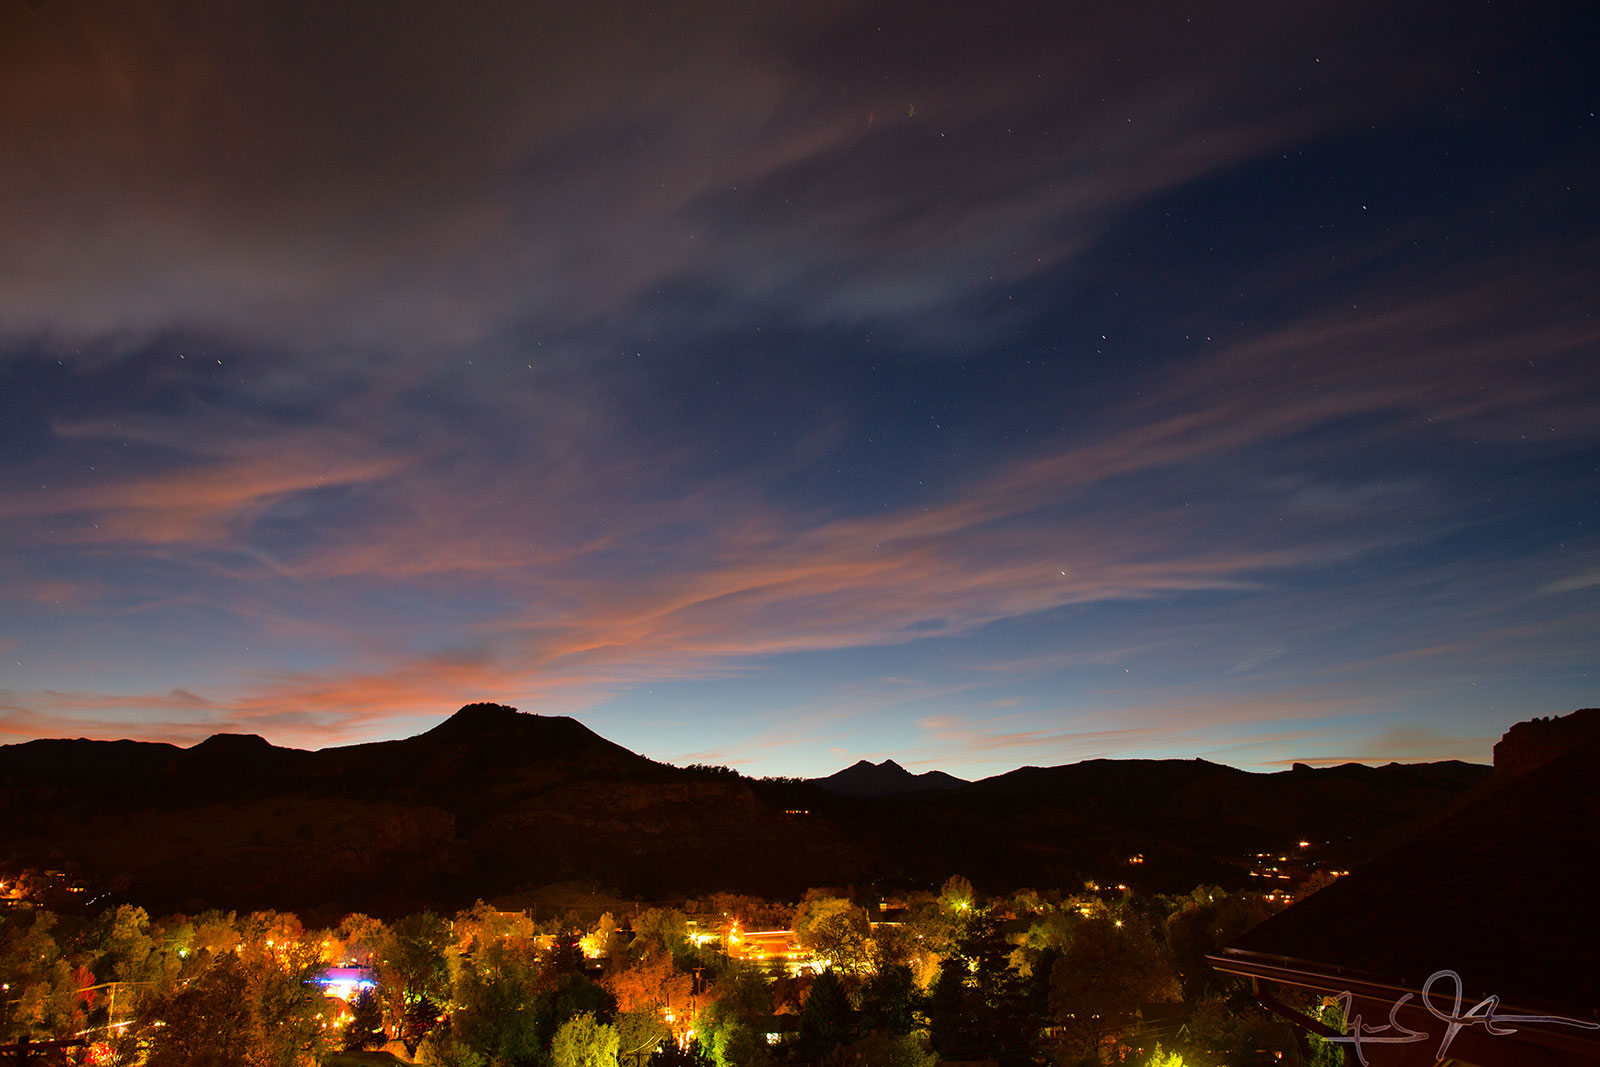 City lights come up and the stars come out as sunset fades over Lyons.